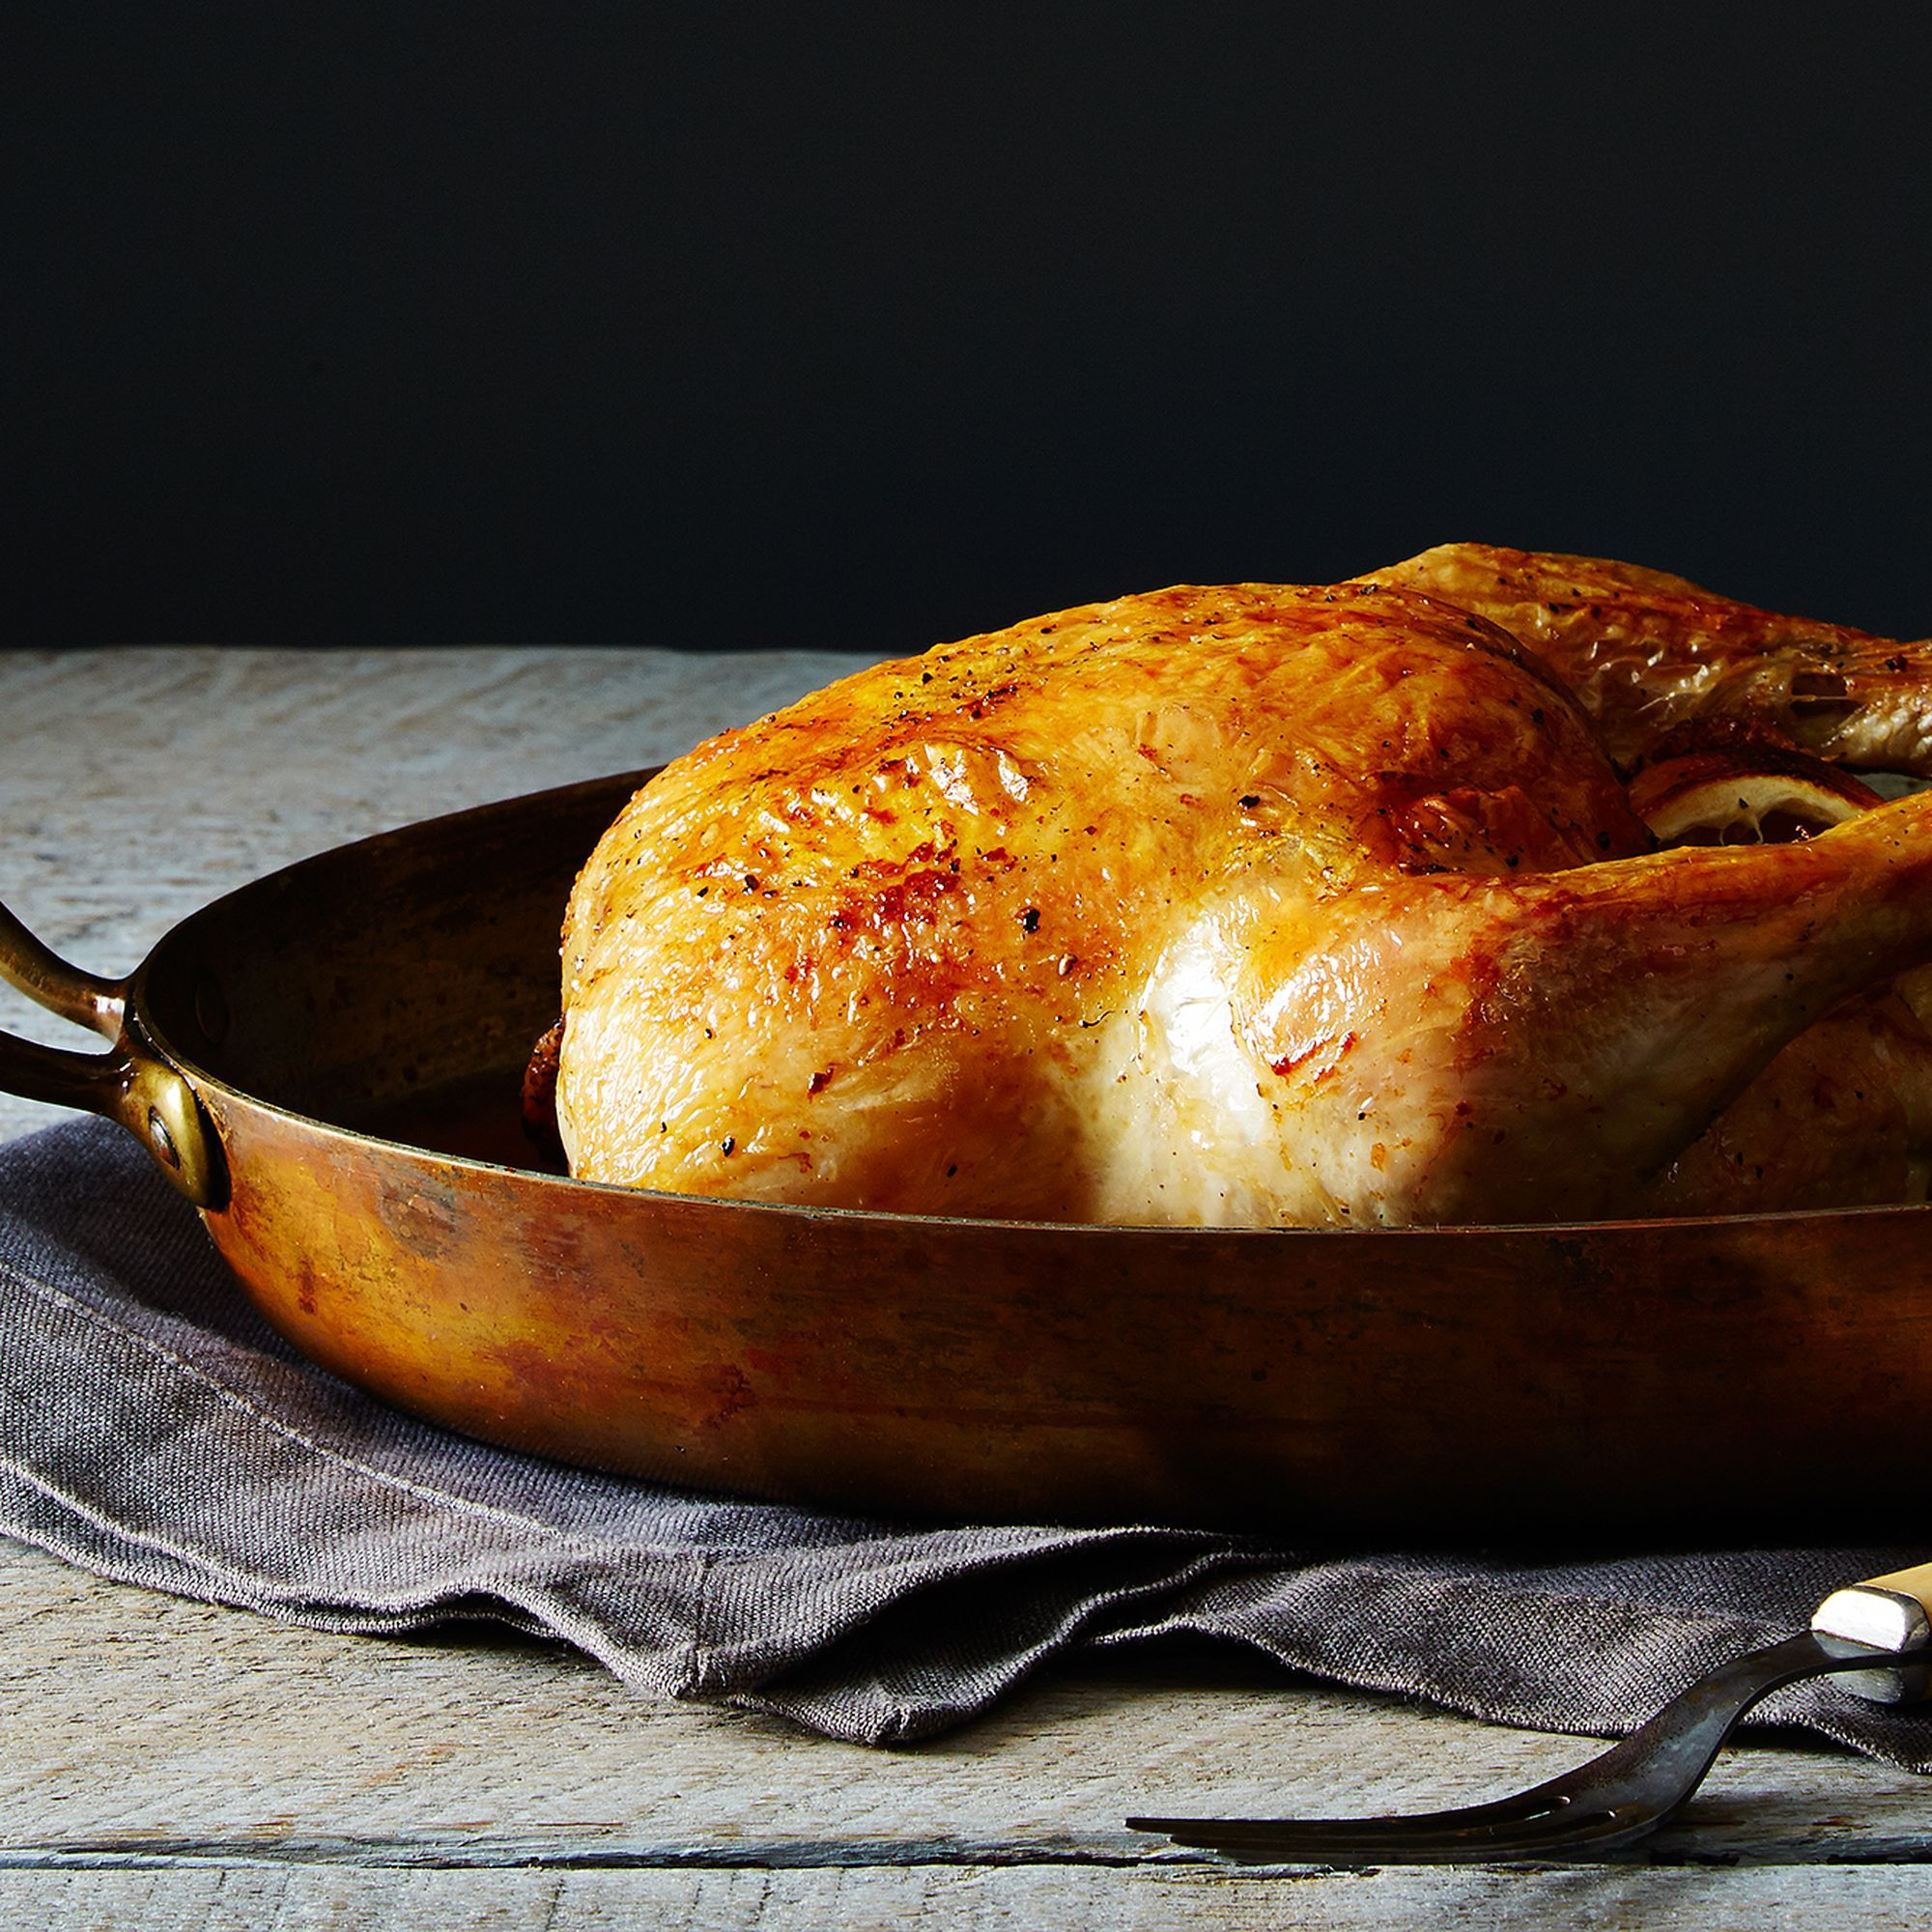 The Best Way To Roast A Whole Chicken, According To 5